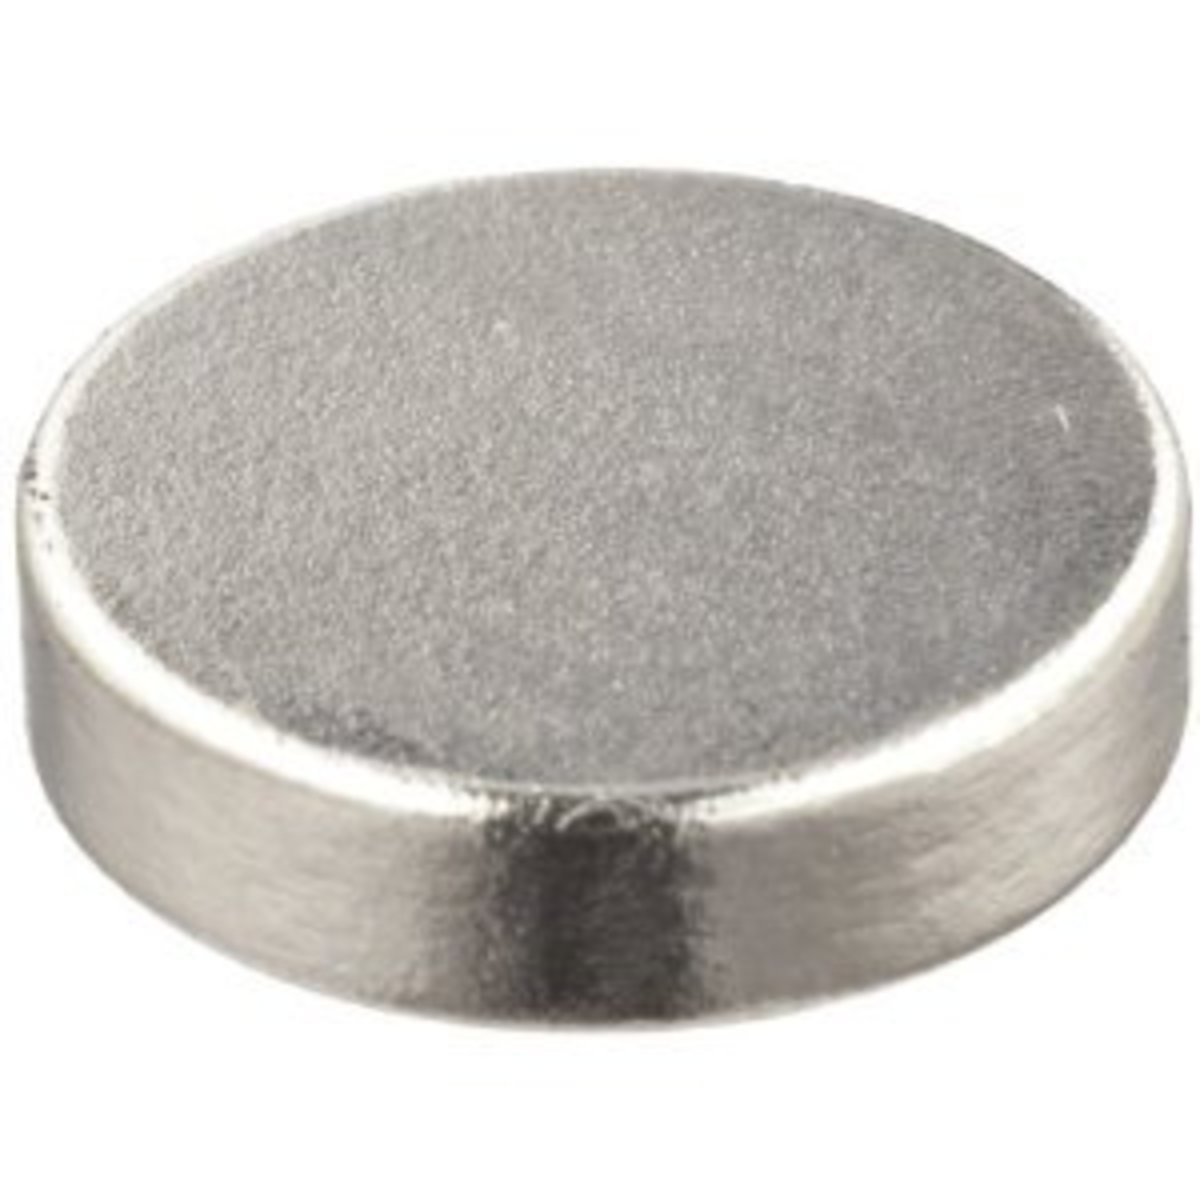 A neodymium magnet (depicted) is one of the strongest and more affordable rare earth magnet types in the world.